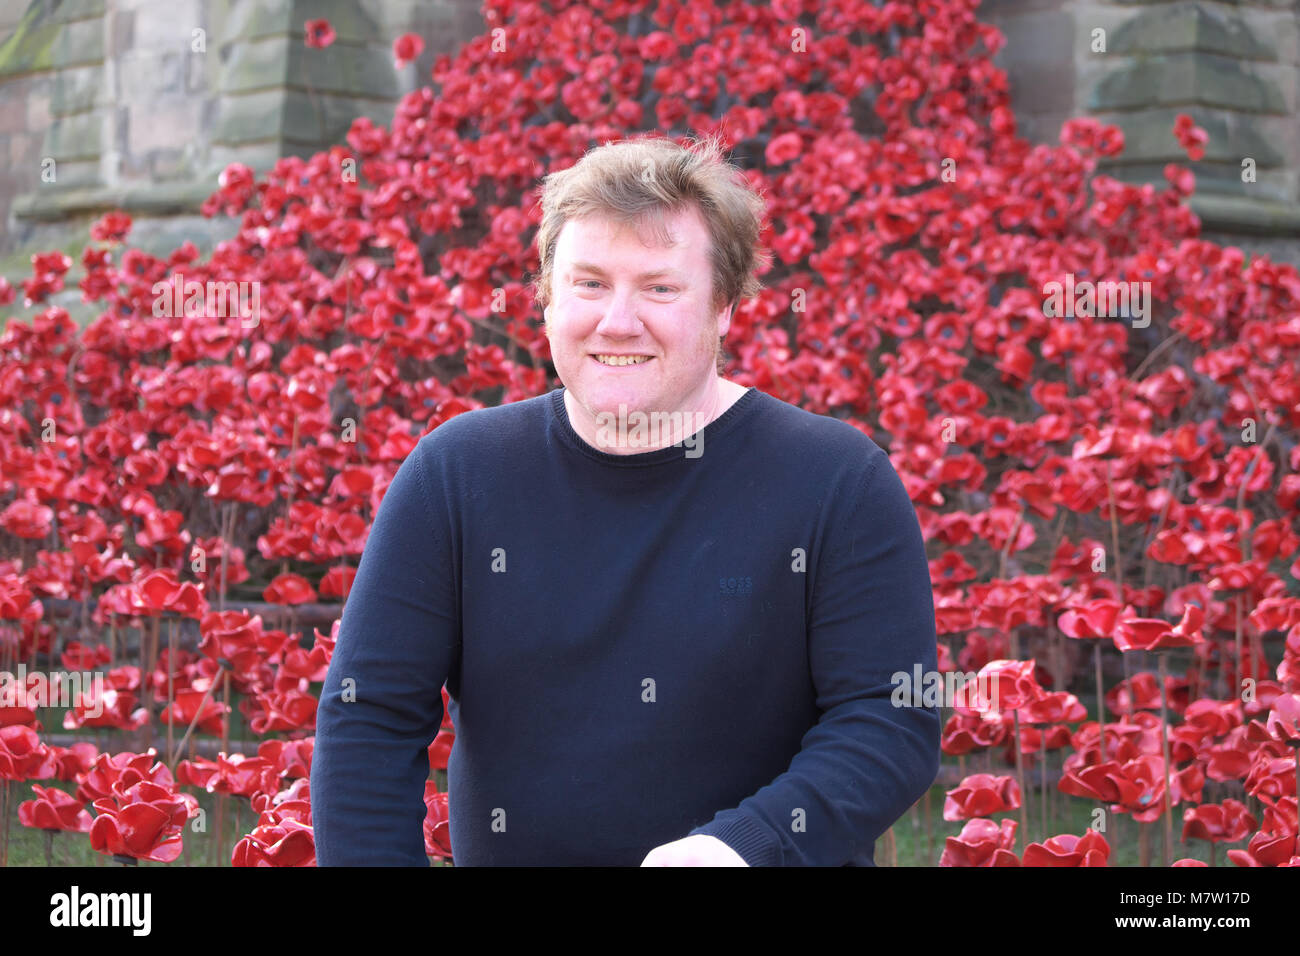 Hereford Cathedral, Hereford - Tuesday 13th March 2018 - Artist Paul Cummins in front of his poppy sculpture Weeping - Stock Image